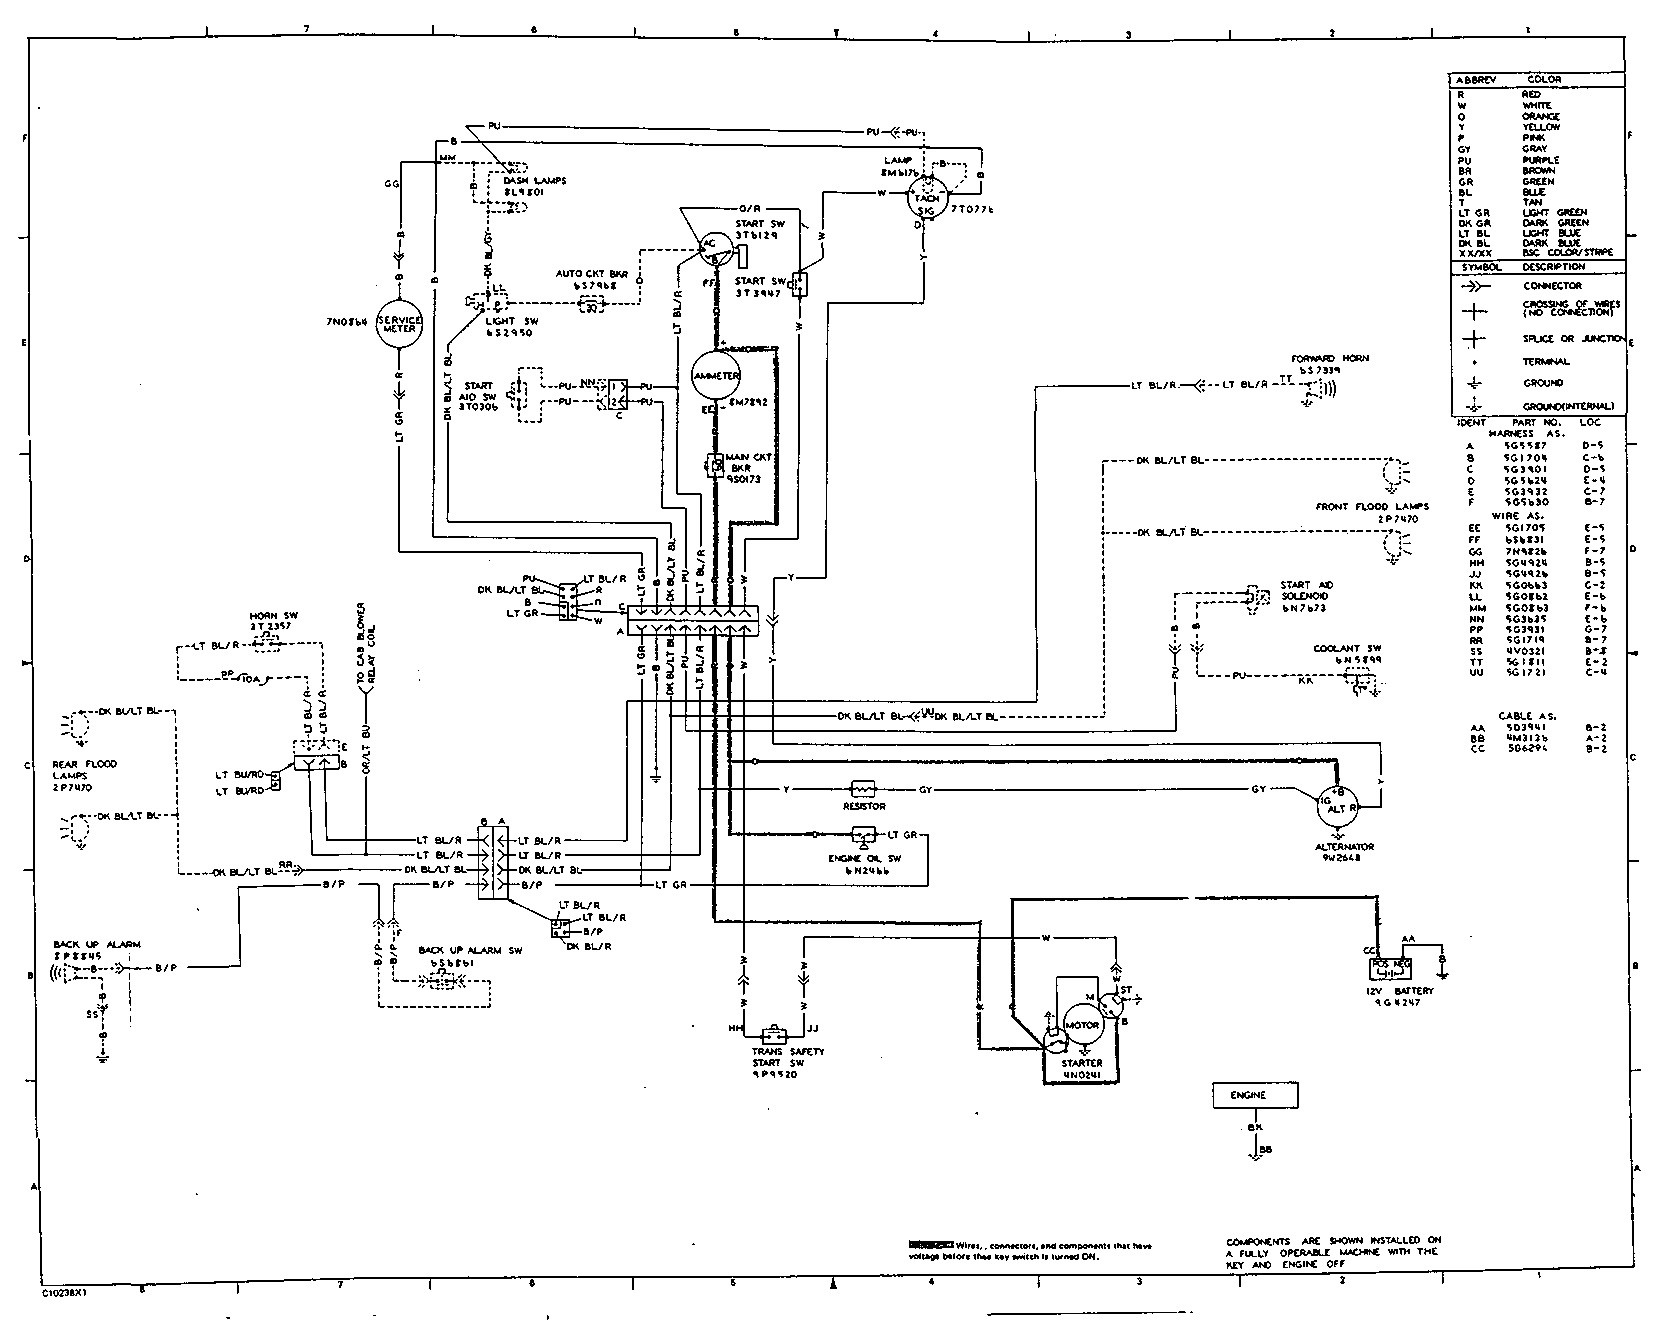 Wiring Diagram: 31 Cat 3116 Fuel Pump Diagram